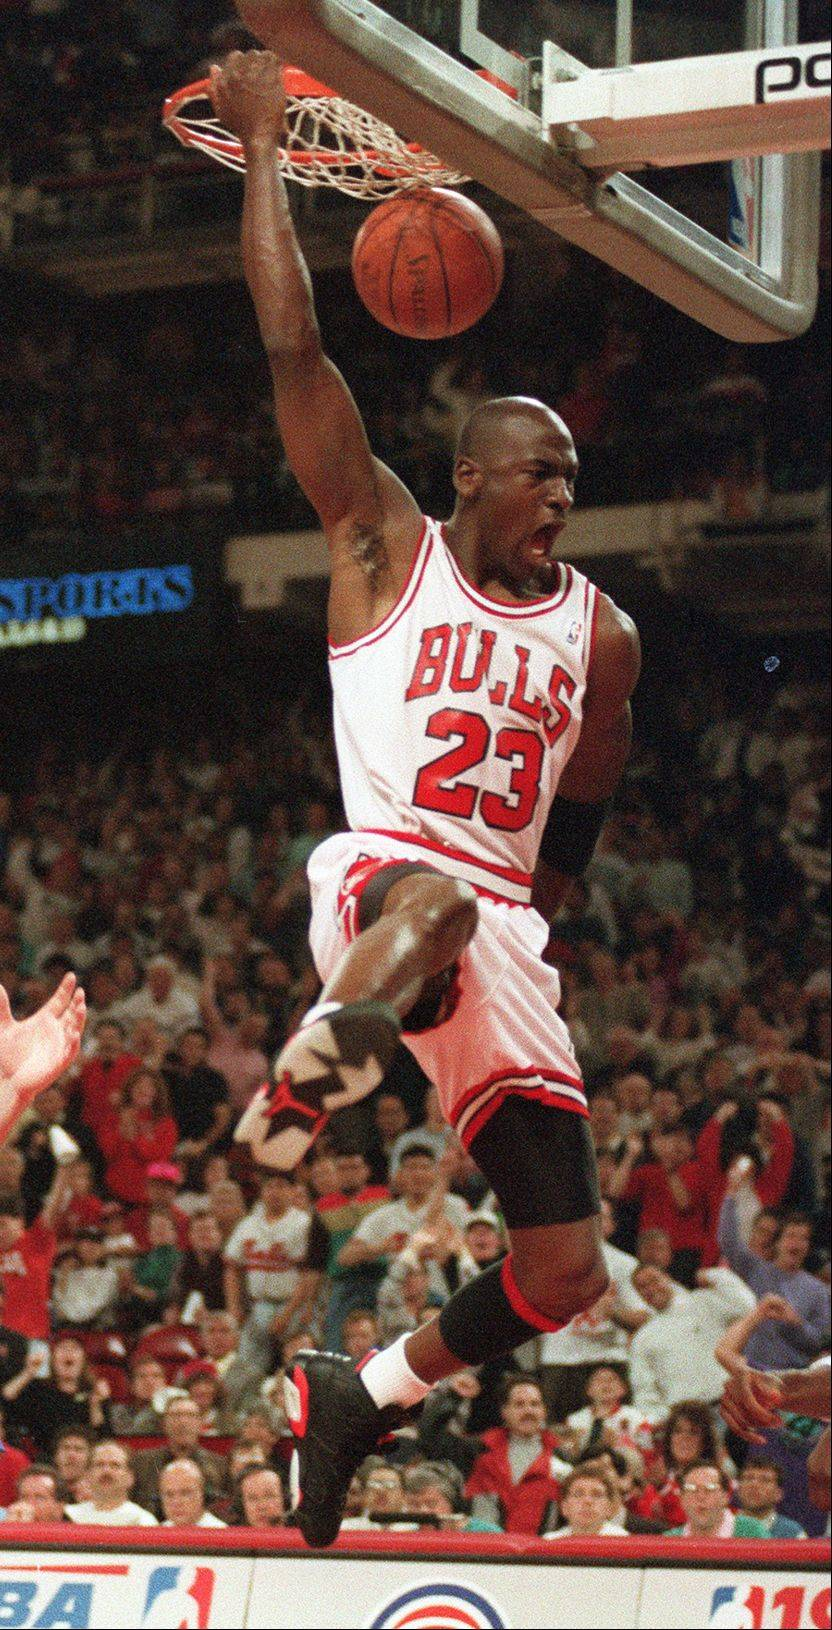 Michael Jordan wowed and amazed beyond words, and it was so special that he was ours all those years as a Bull.